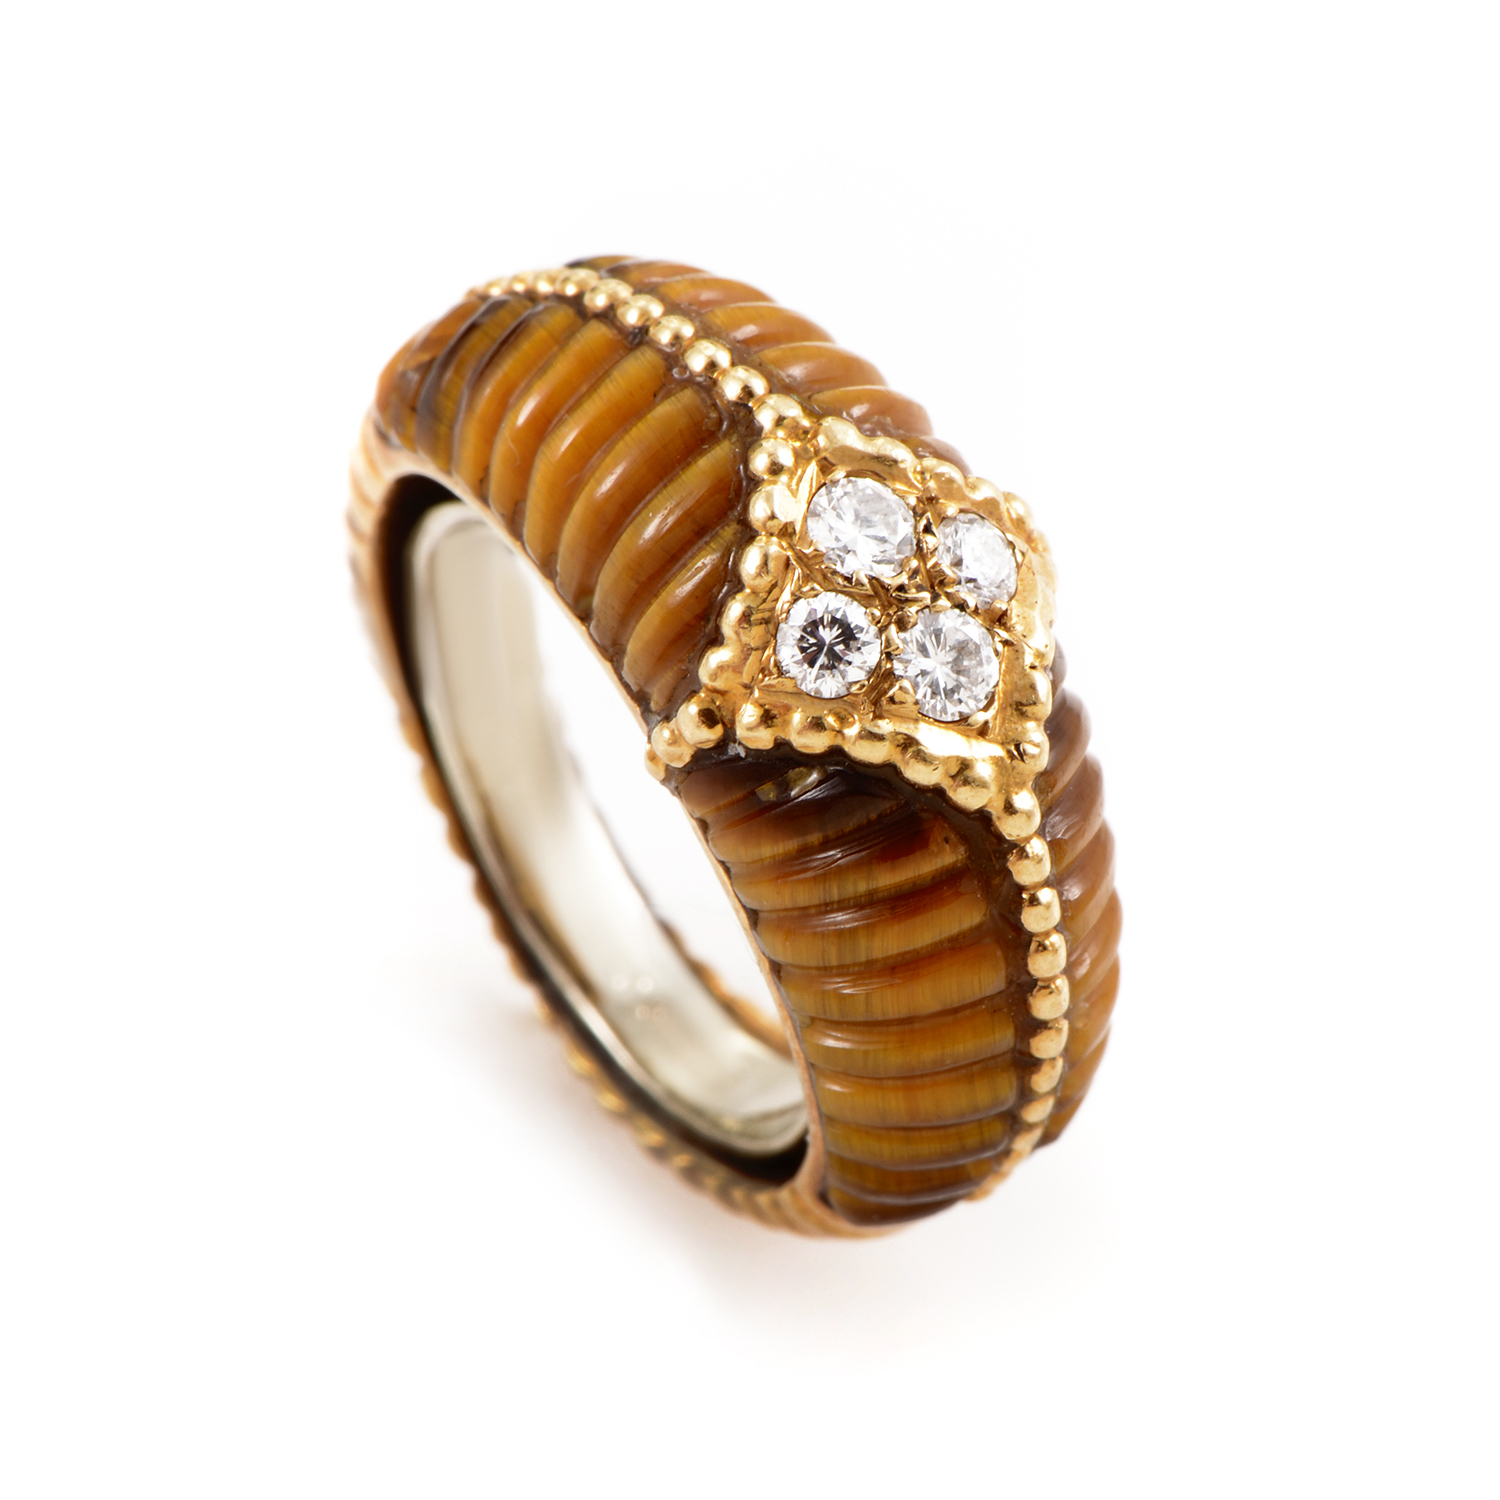 Van Cleef & Arpels Womens 18K Yellow Gold Diamond and Tiger's Eye Band Ring